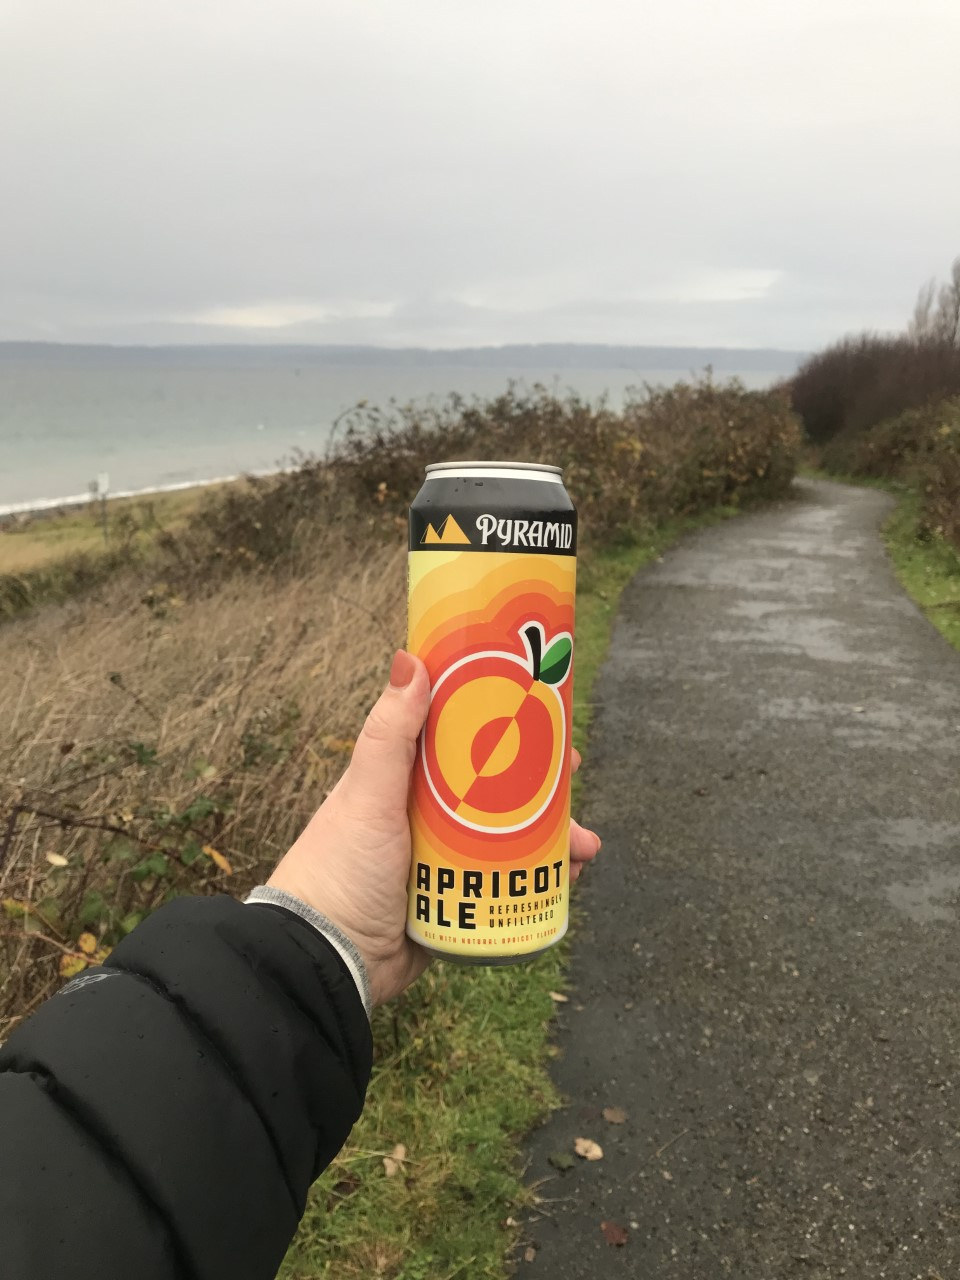 Hand holding a can of Pyramid Apricot Ale in front ofa paved path through a wild grassy hill along a seashore.